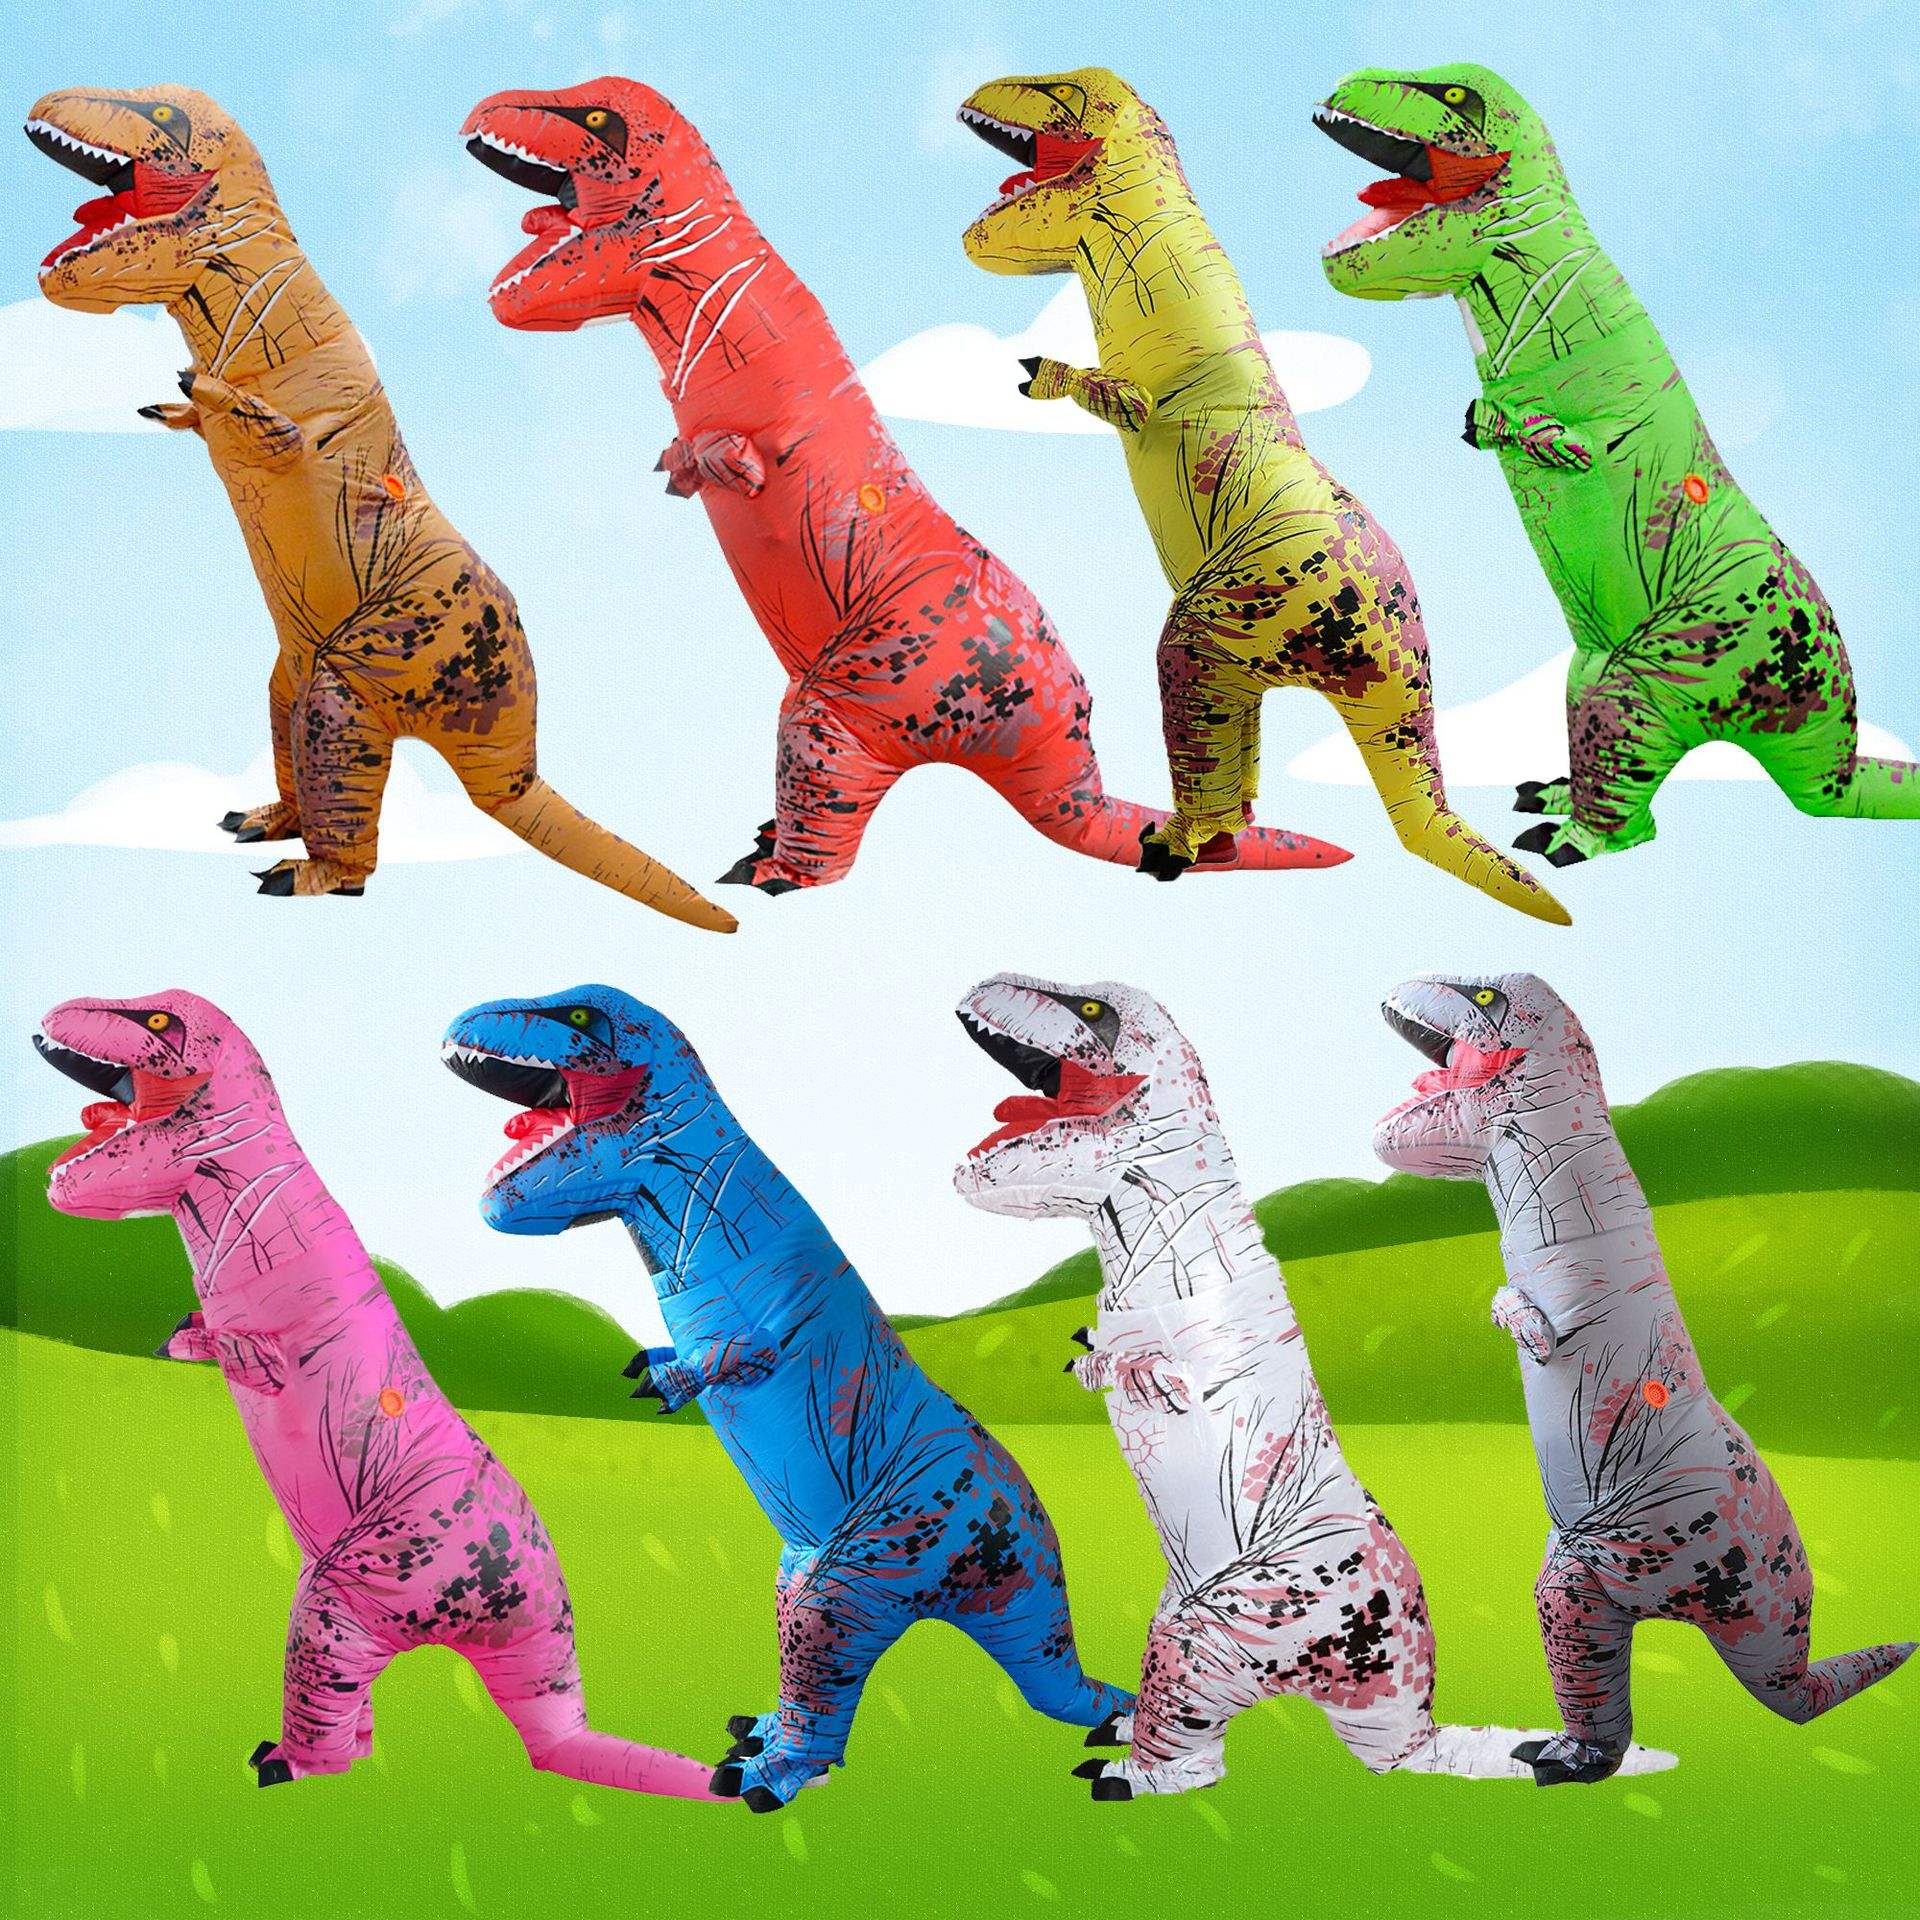 Halloween Christmas Dinosaur Inflatable Suit Tyrannosaurus Wreck Inflatable Clothing Cosplay Performance Costume Child Adult